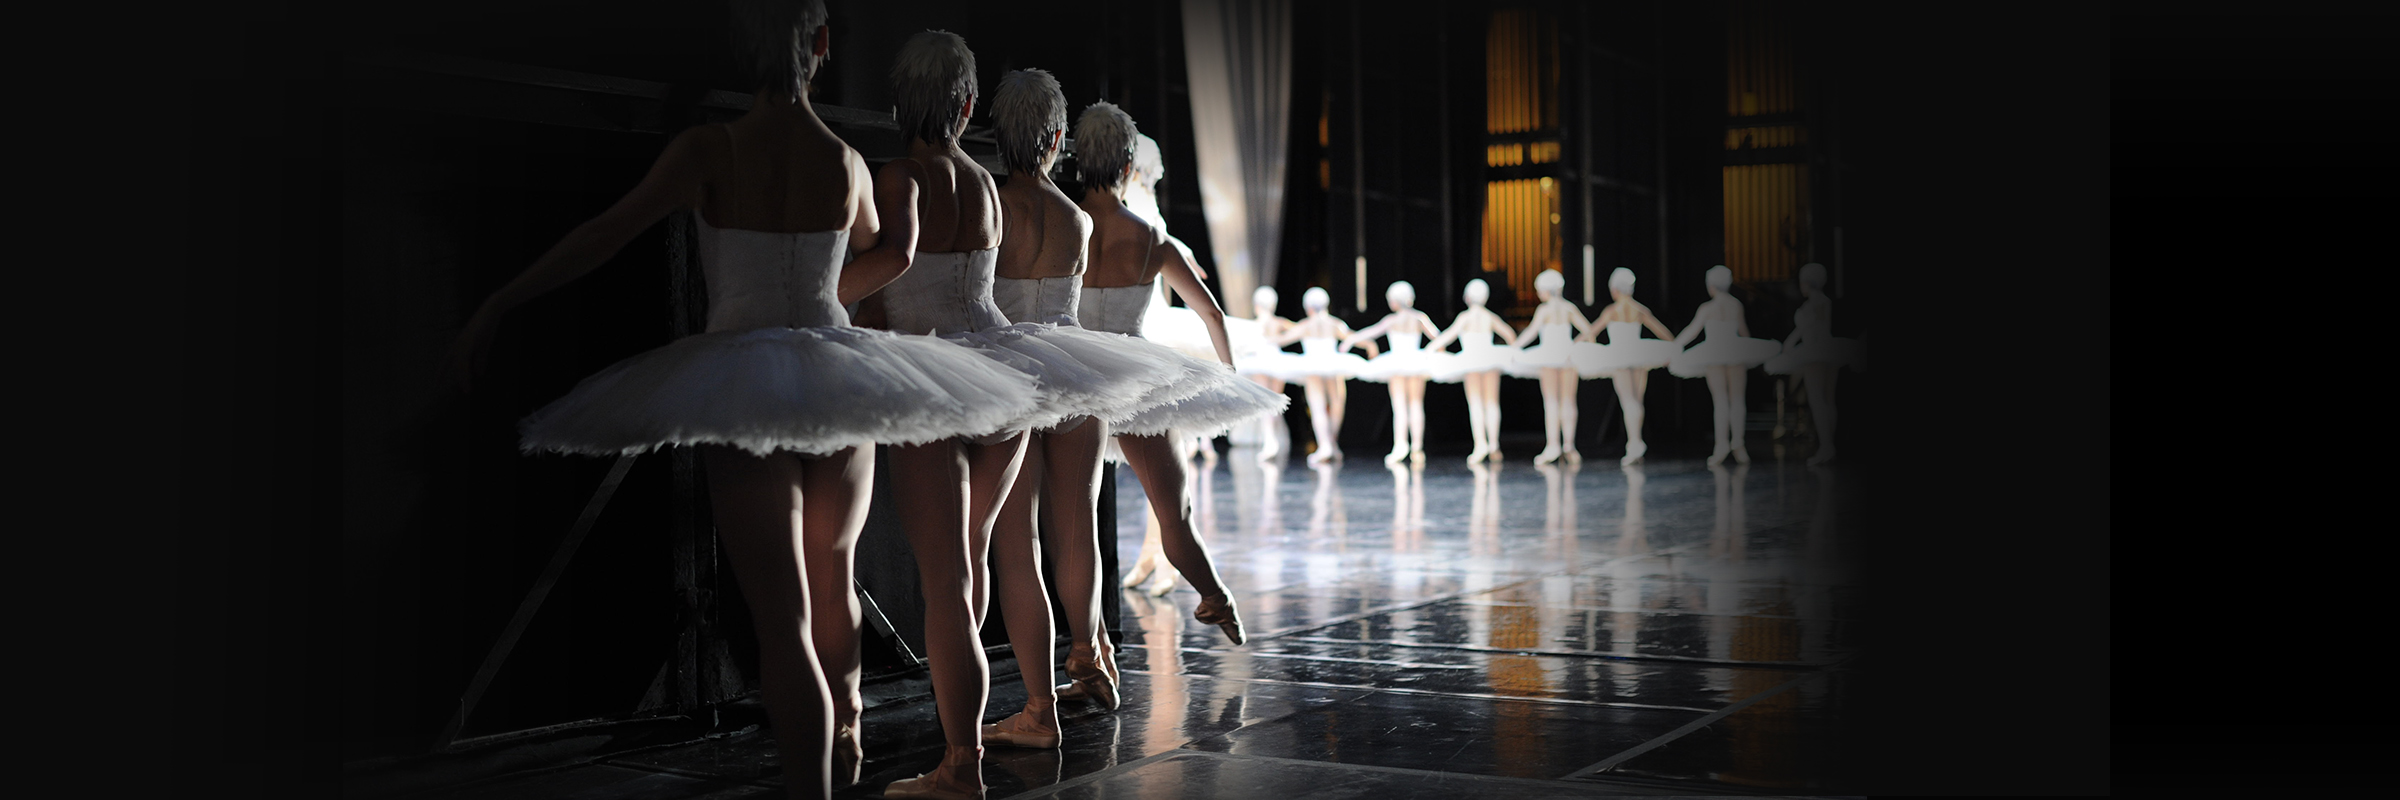 San Francisco Ballet dancers backstage of Swan Lake